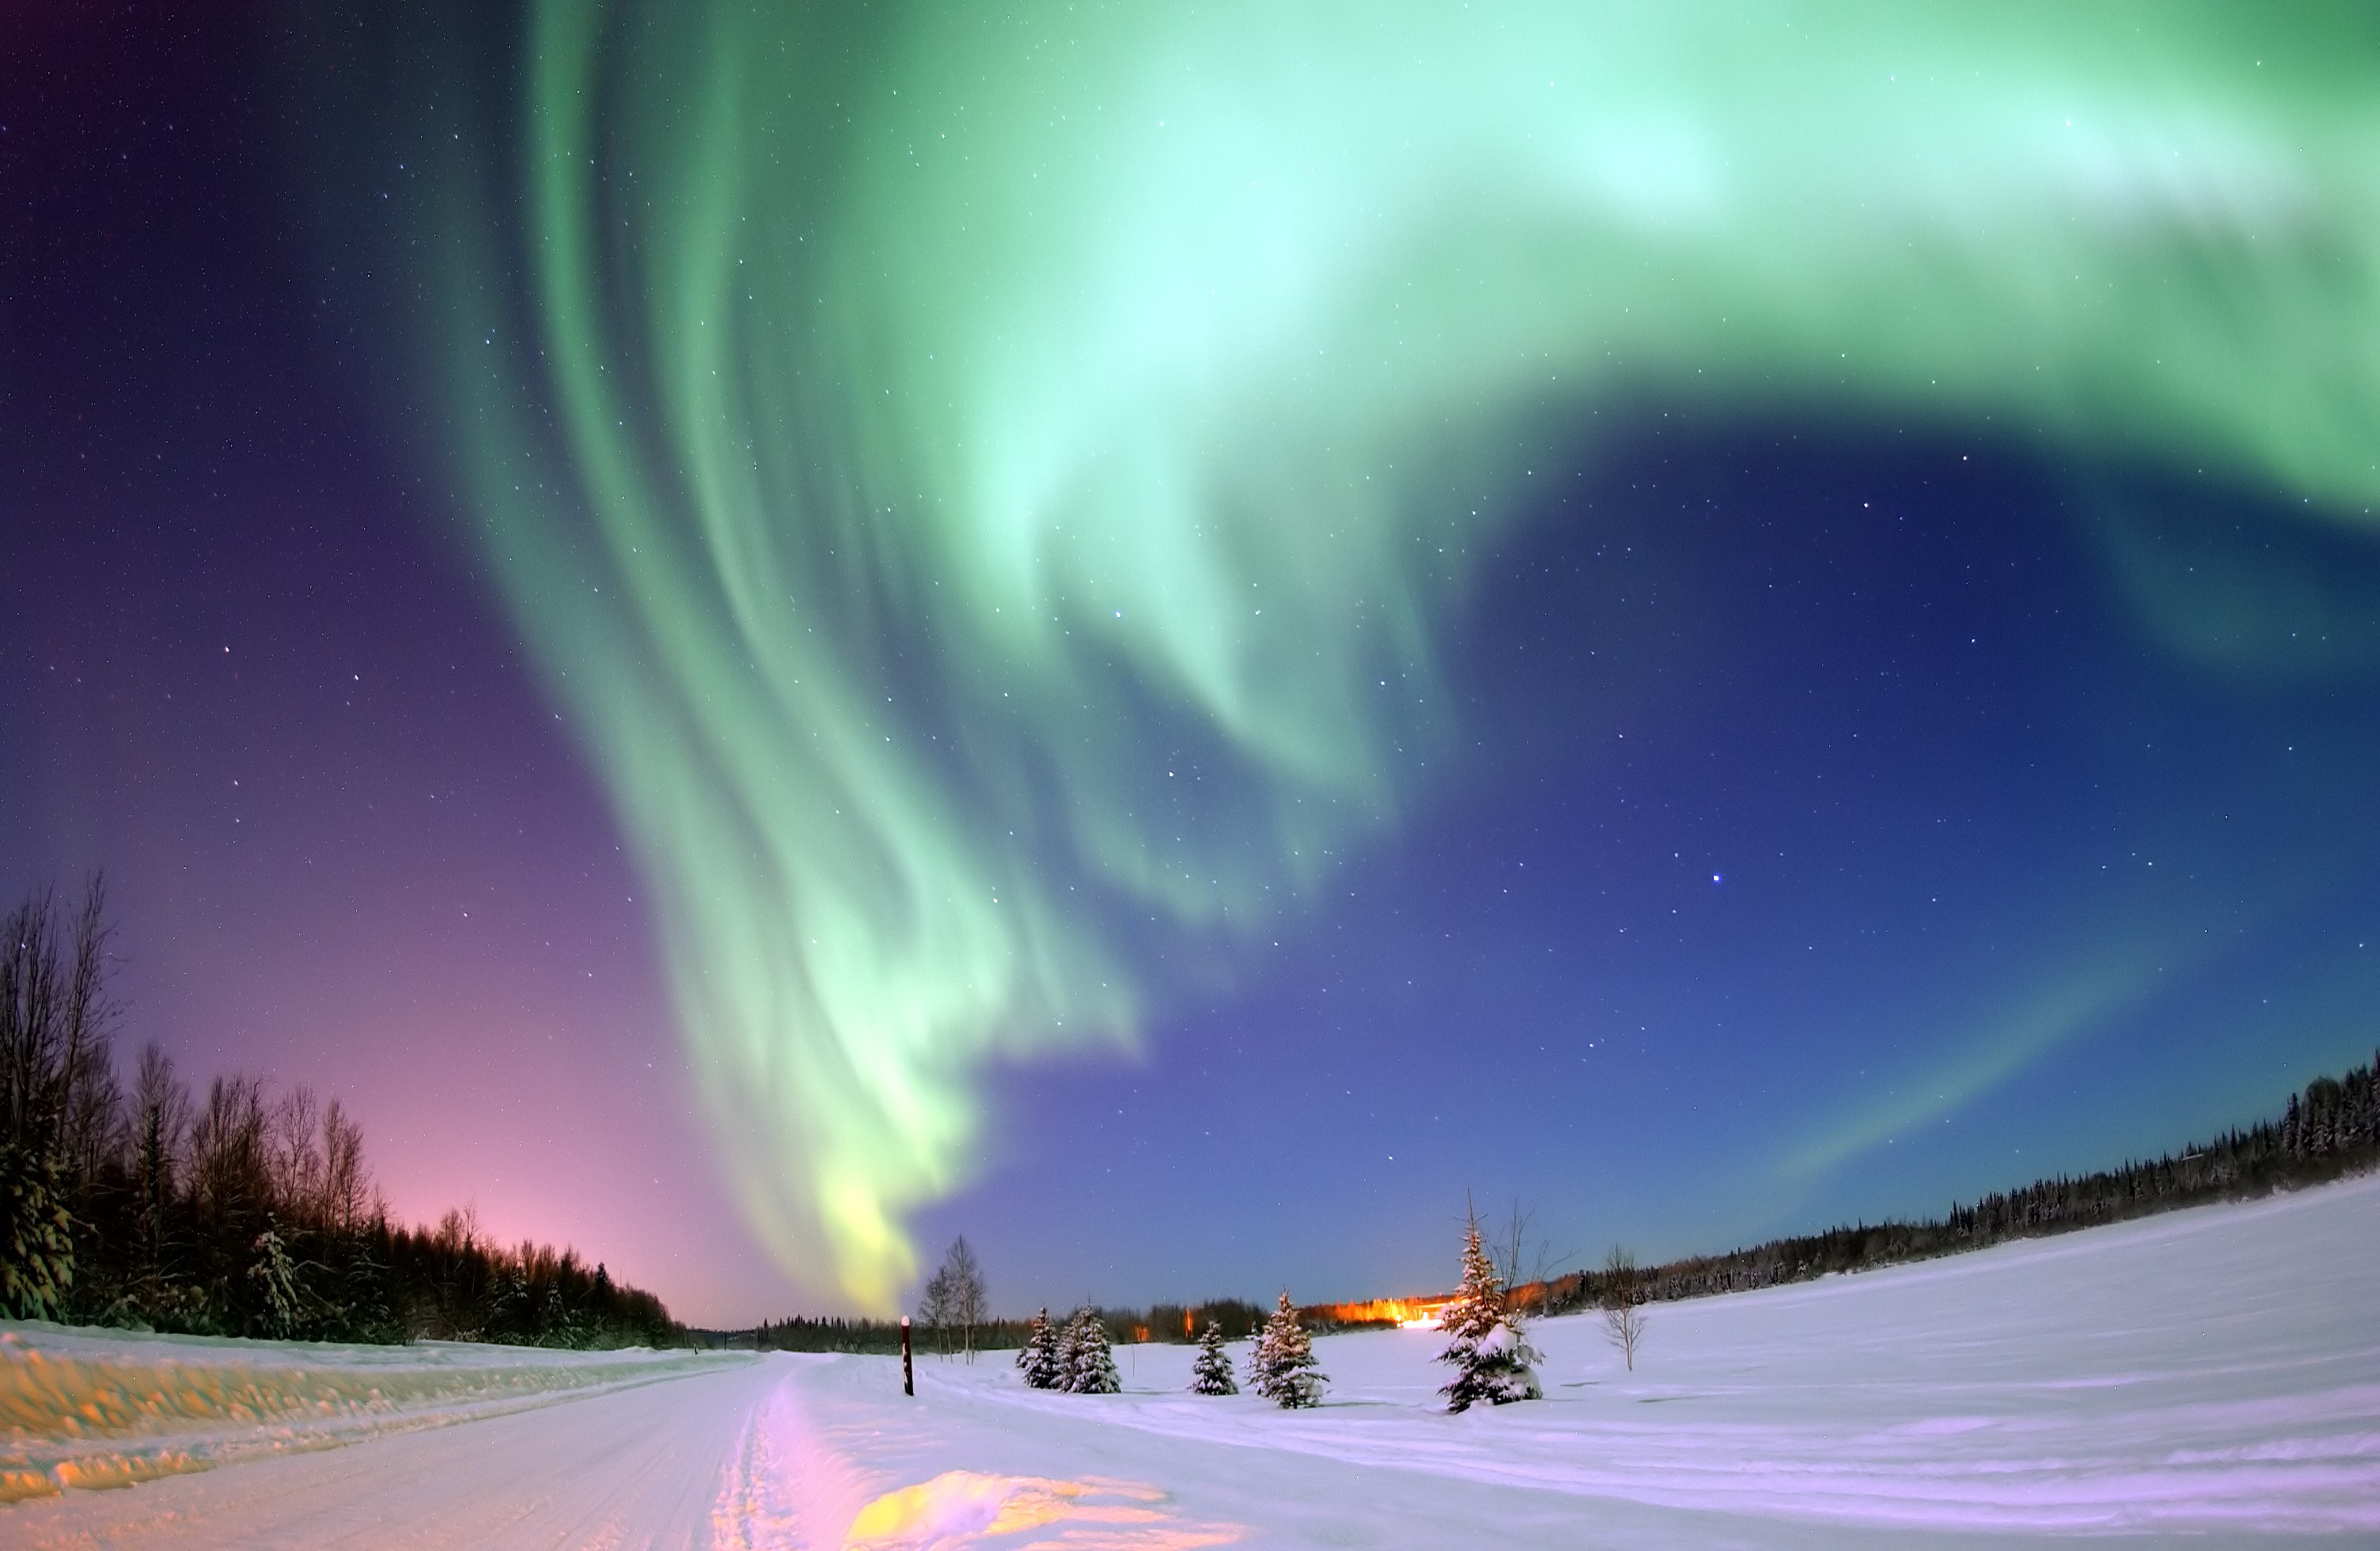 aurora_borealis_aurora_northern_lights